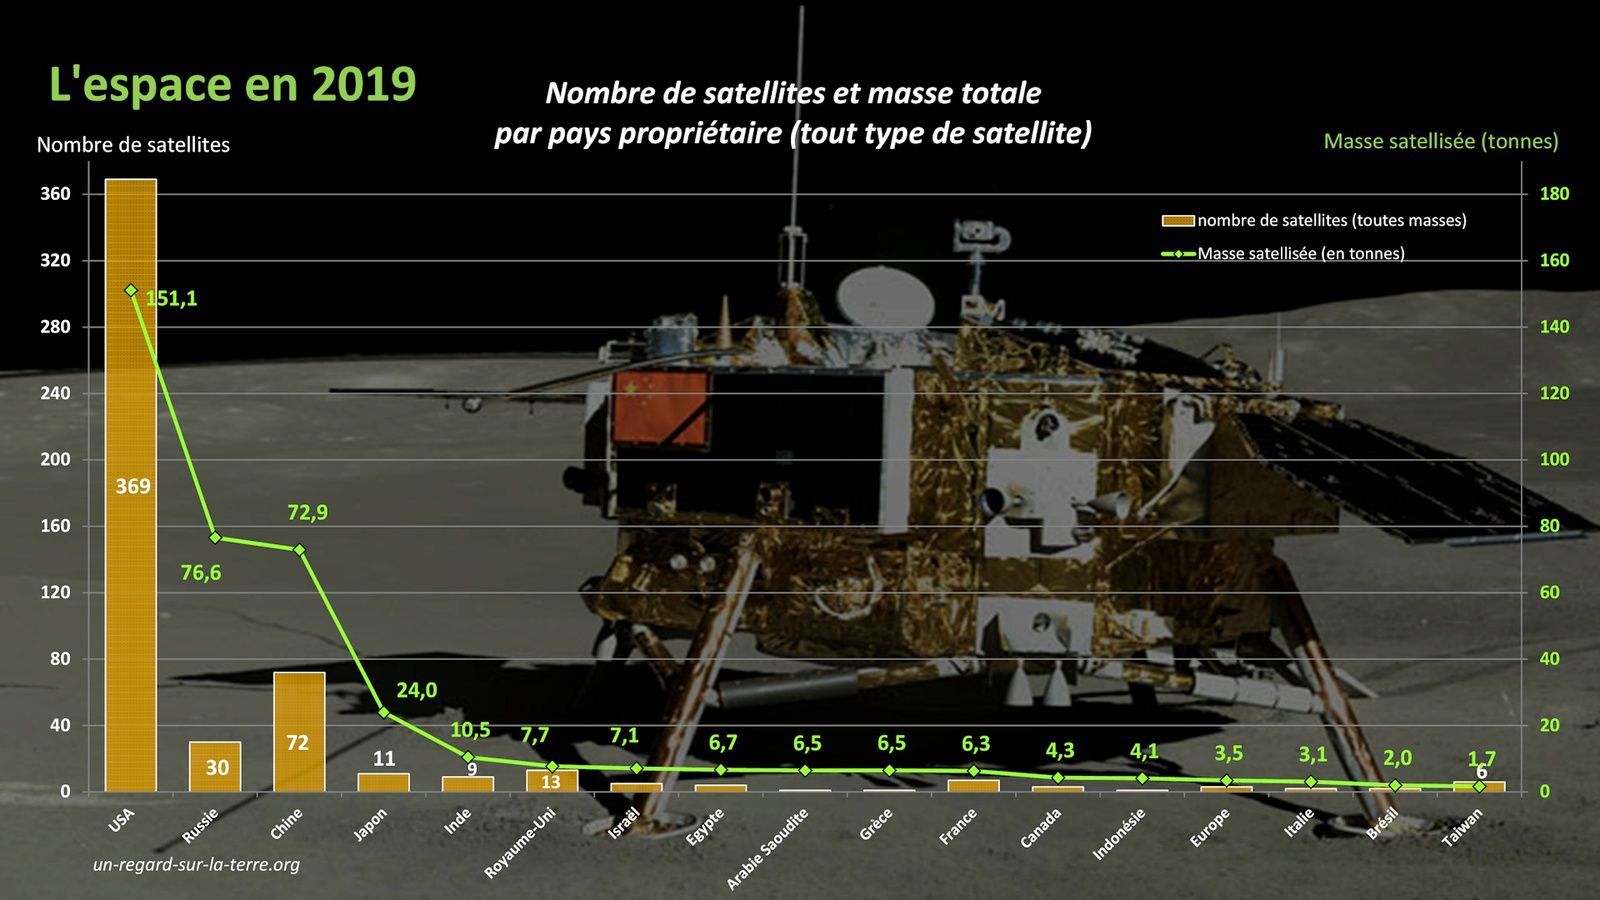 Satellites 2019 - Space year in review - Bilan de l'année spatiale 2019 - Nombre de satellites et masse en orbite par pays propriétaire - Satellite owners - Space nations - Tous types de satellite